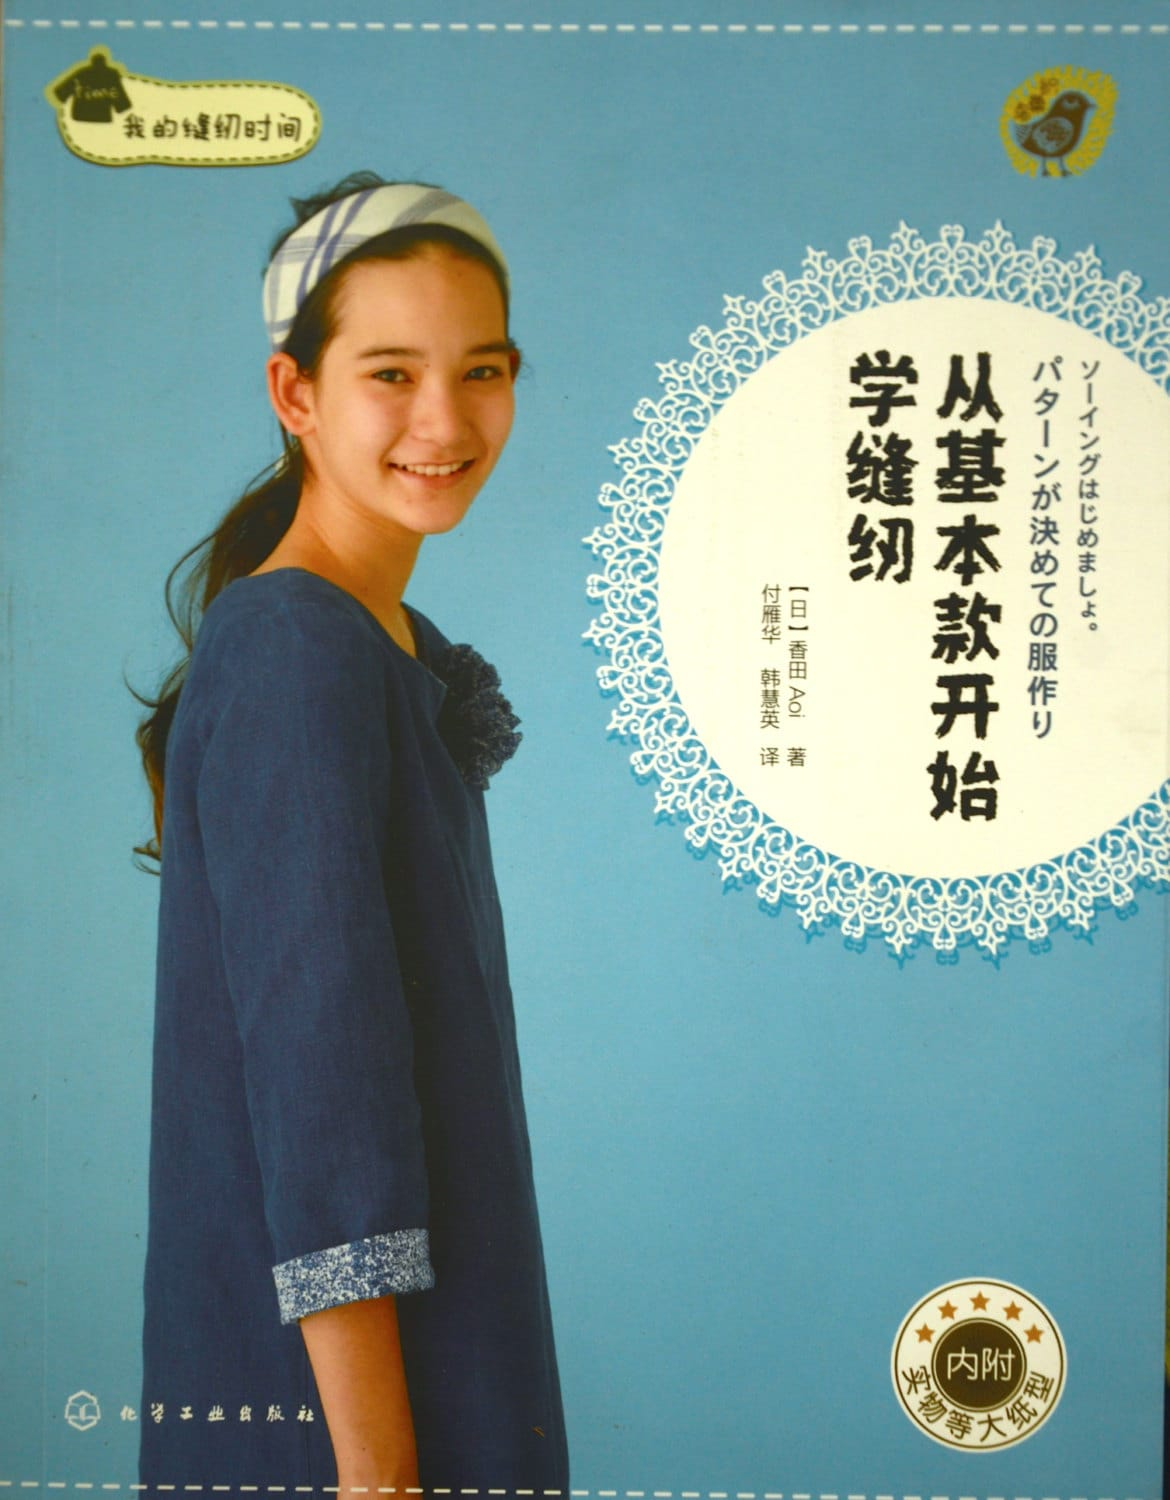 Basic sewing patterns by aoi koda japanese sewing craft book zoom jeuxipadfo Image collections